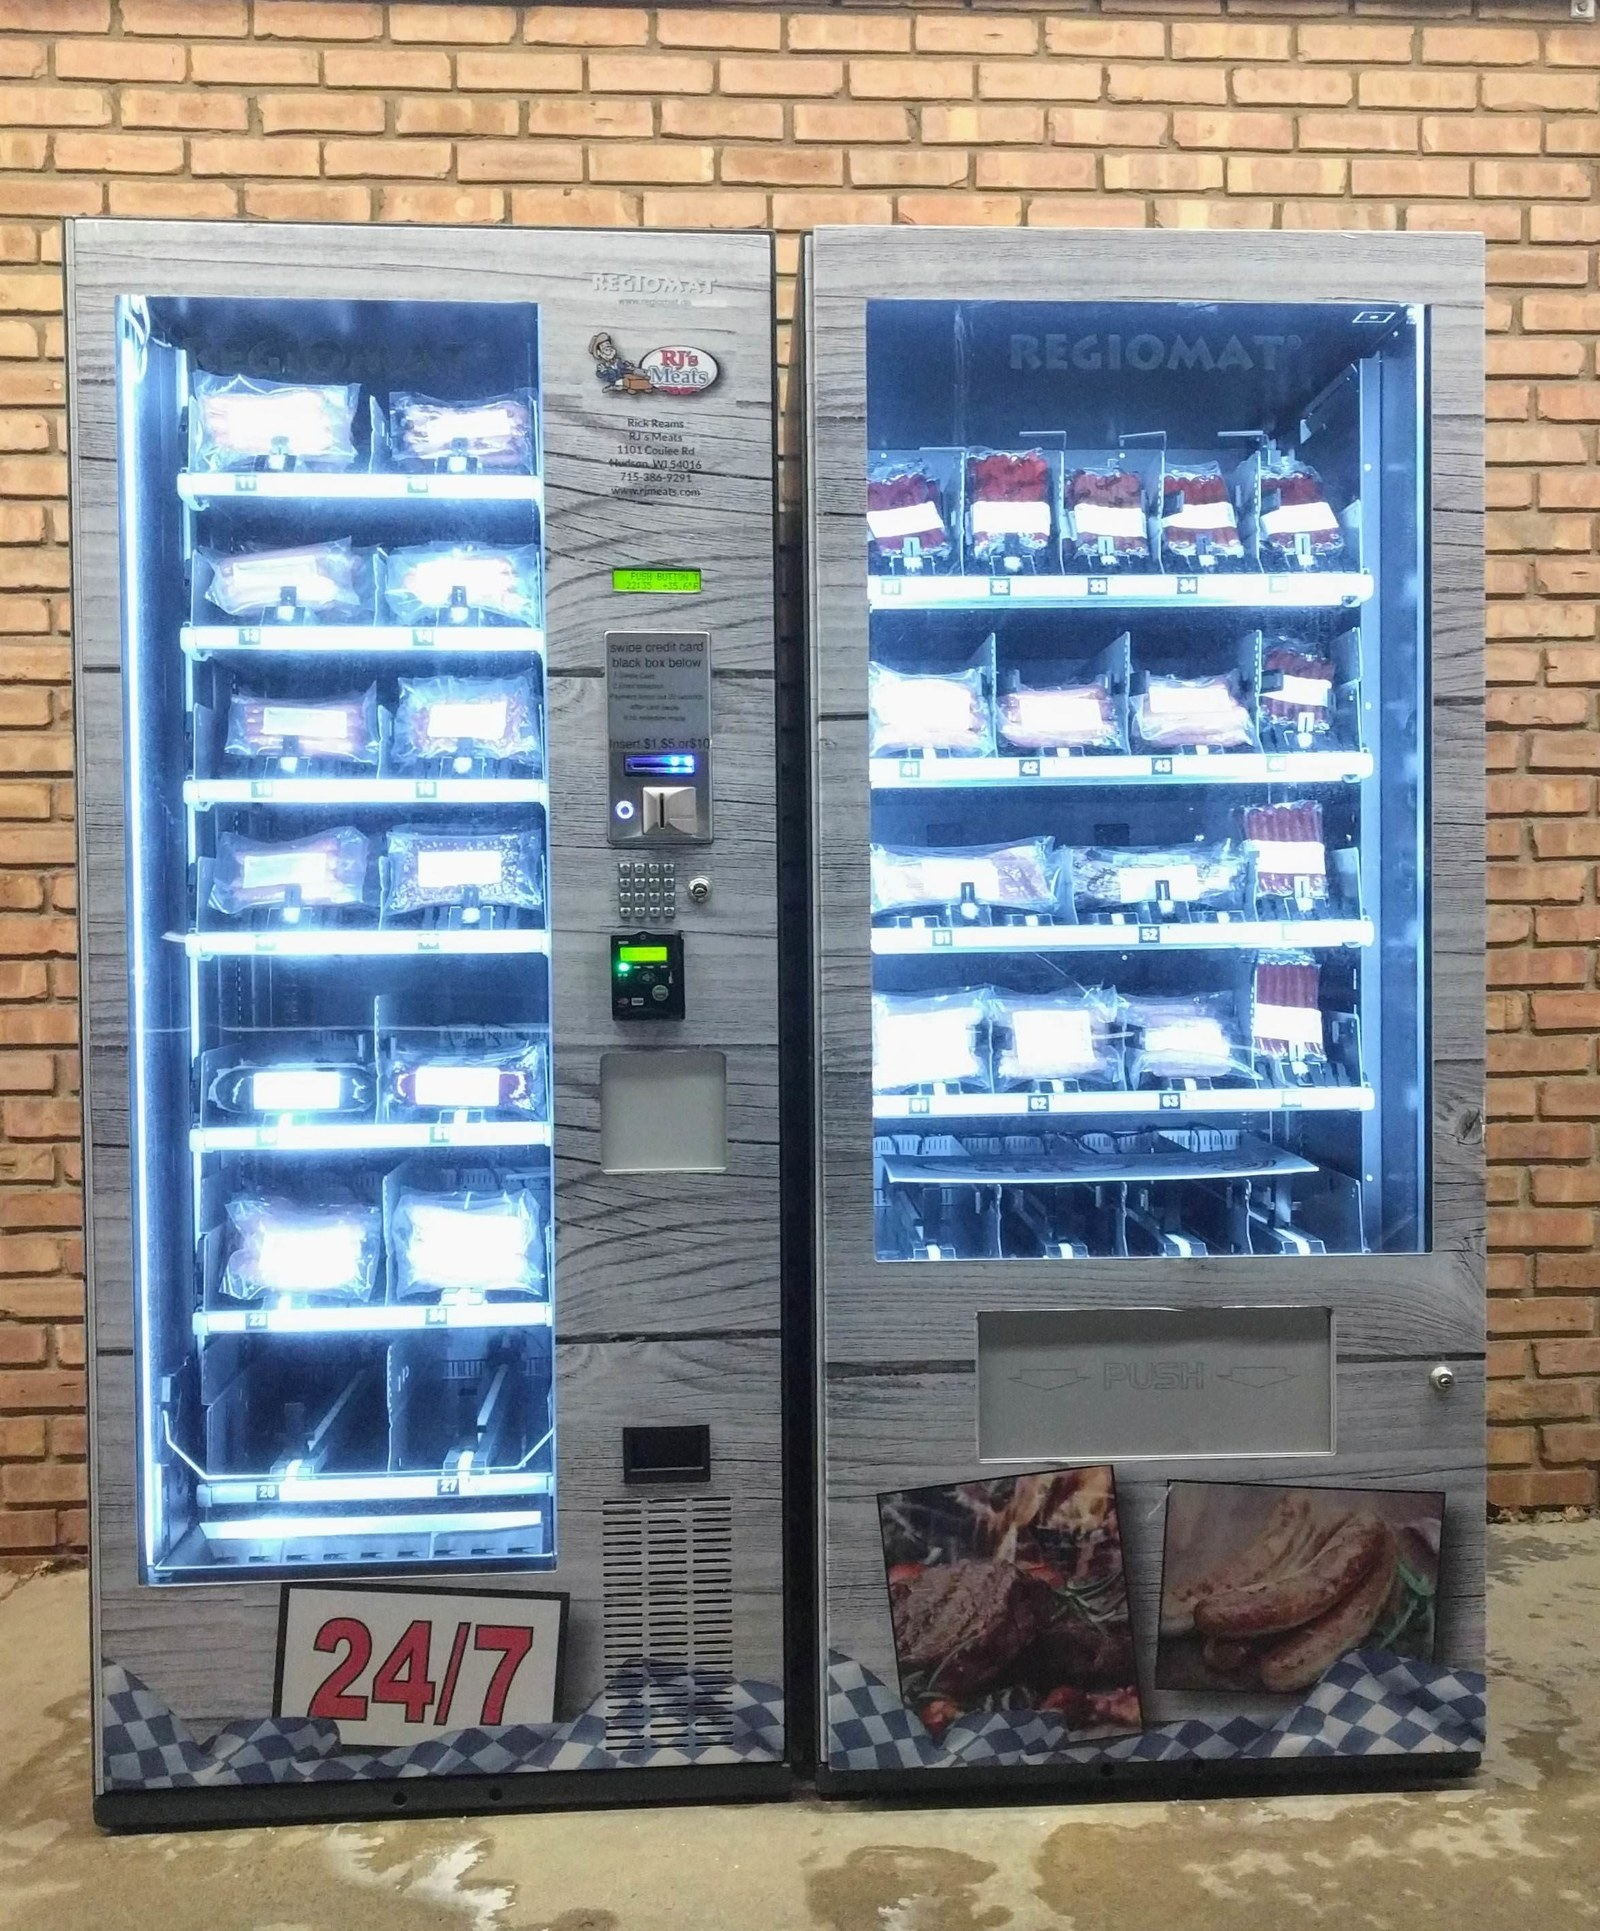 An outdoor meat vending machine